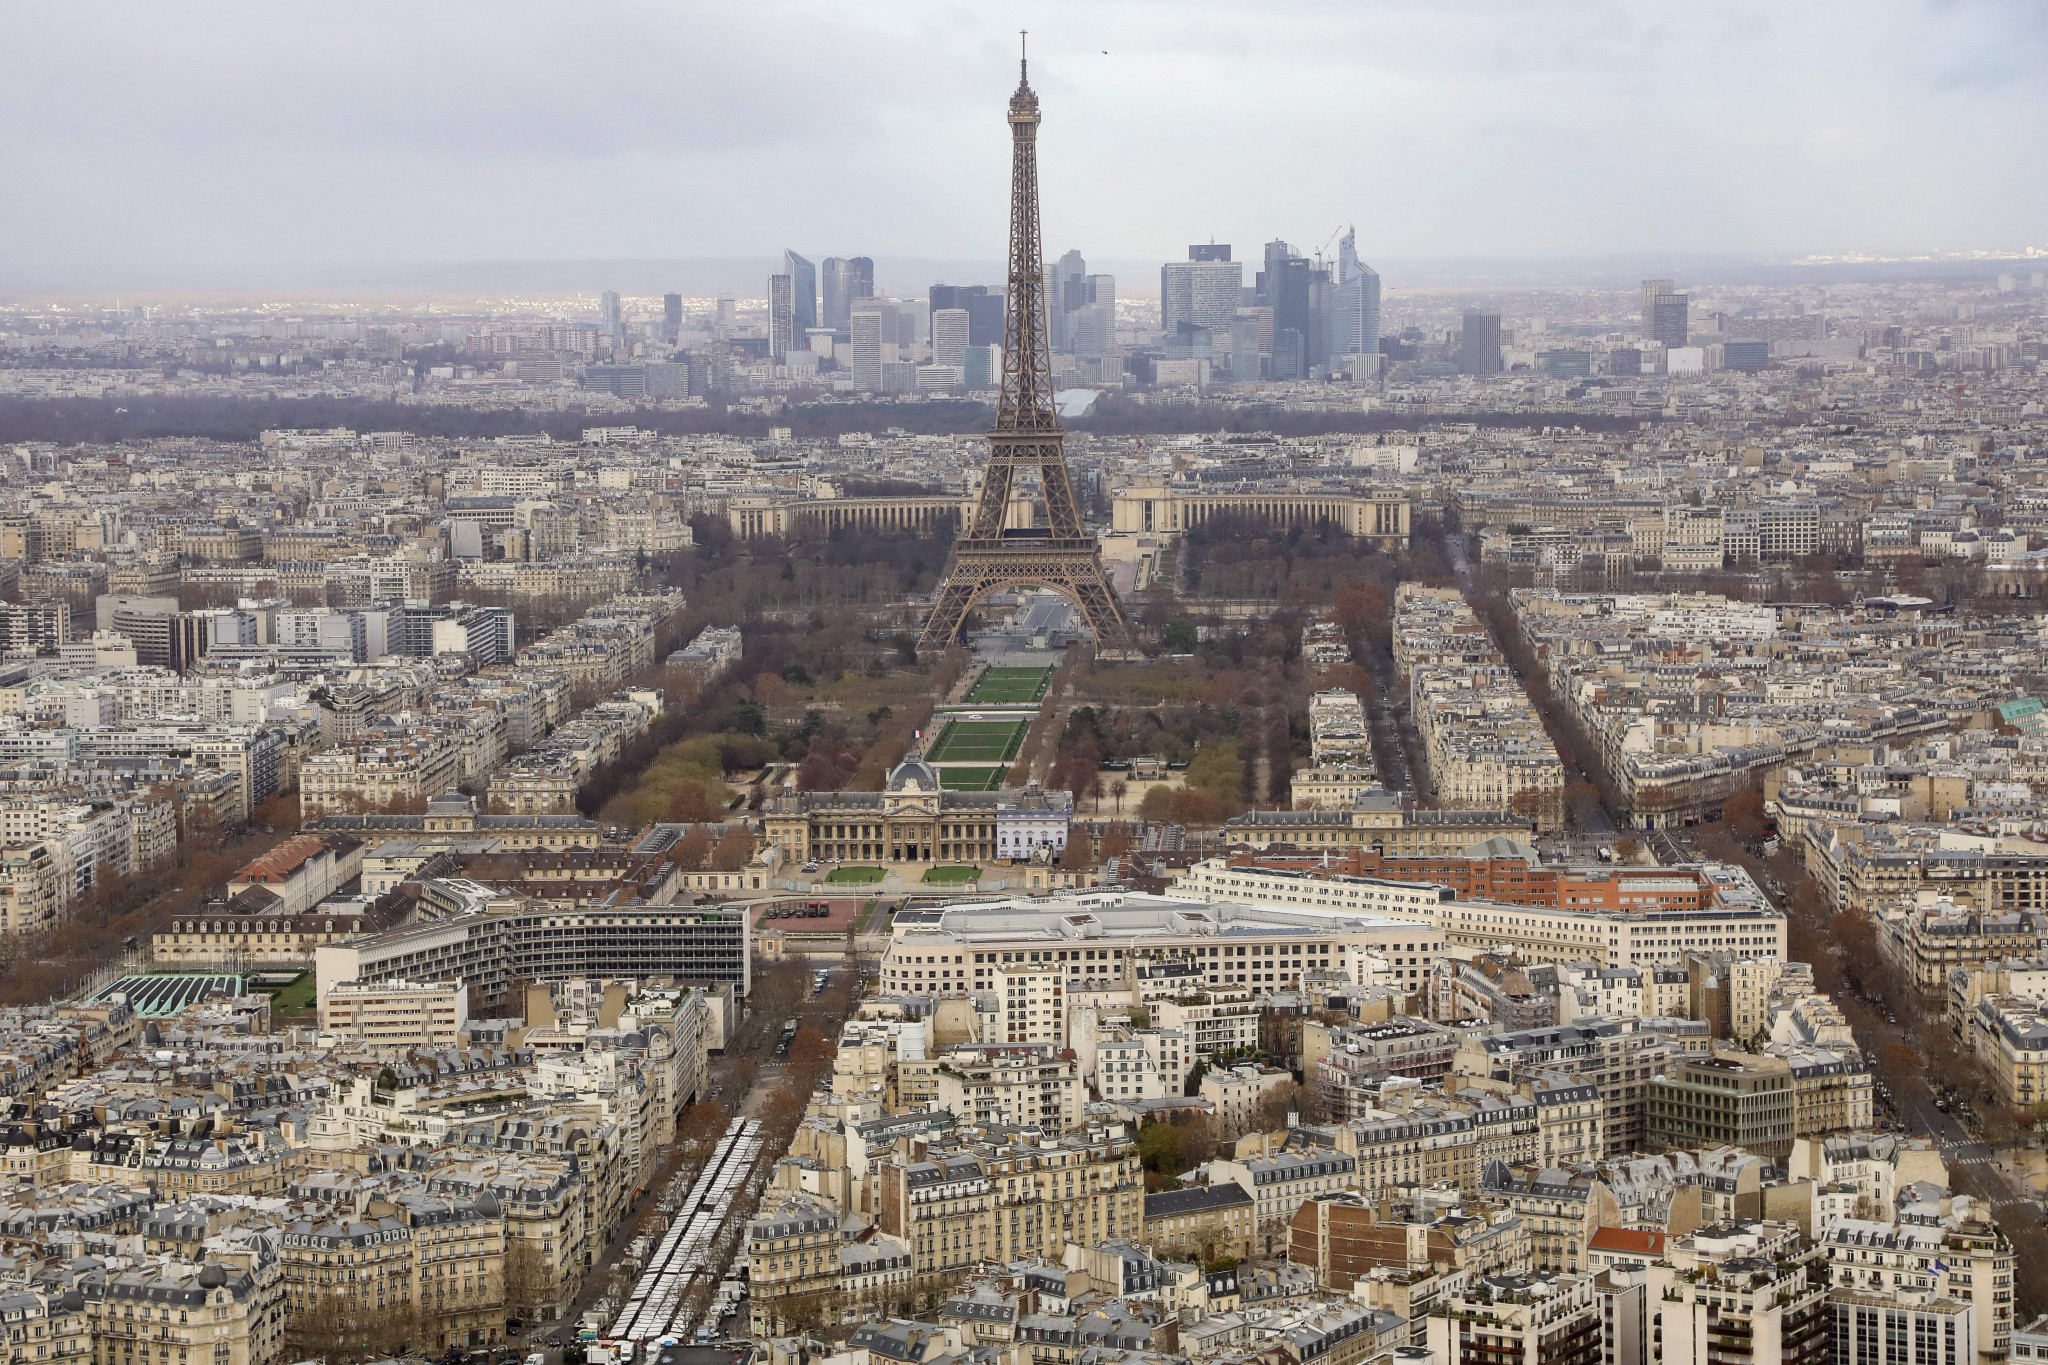 Global Sports Week to bring together key figures in Olympic host city Paris